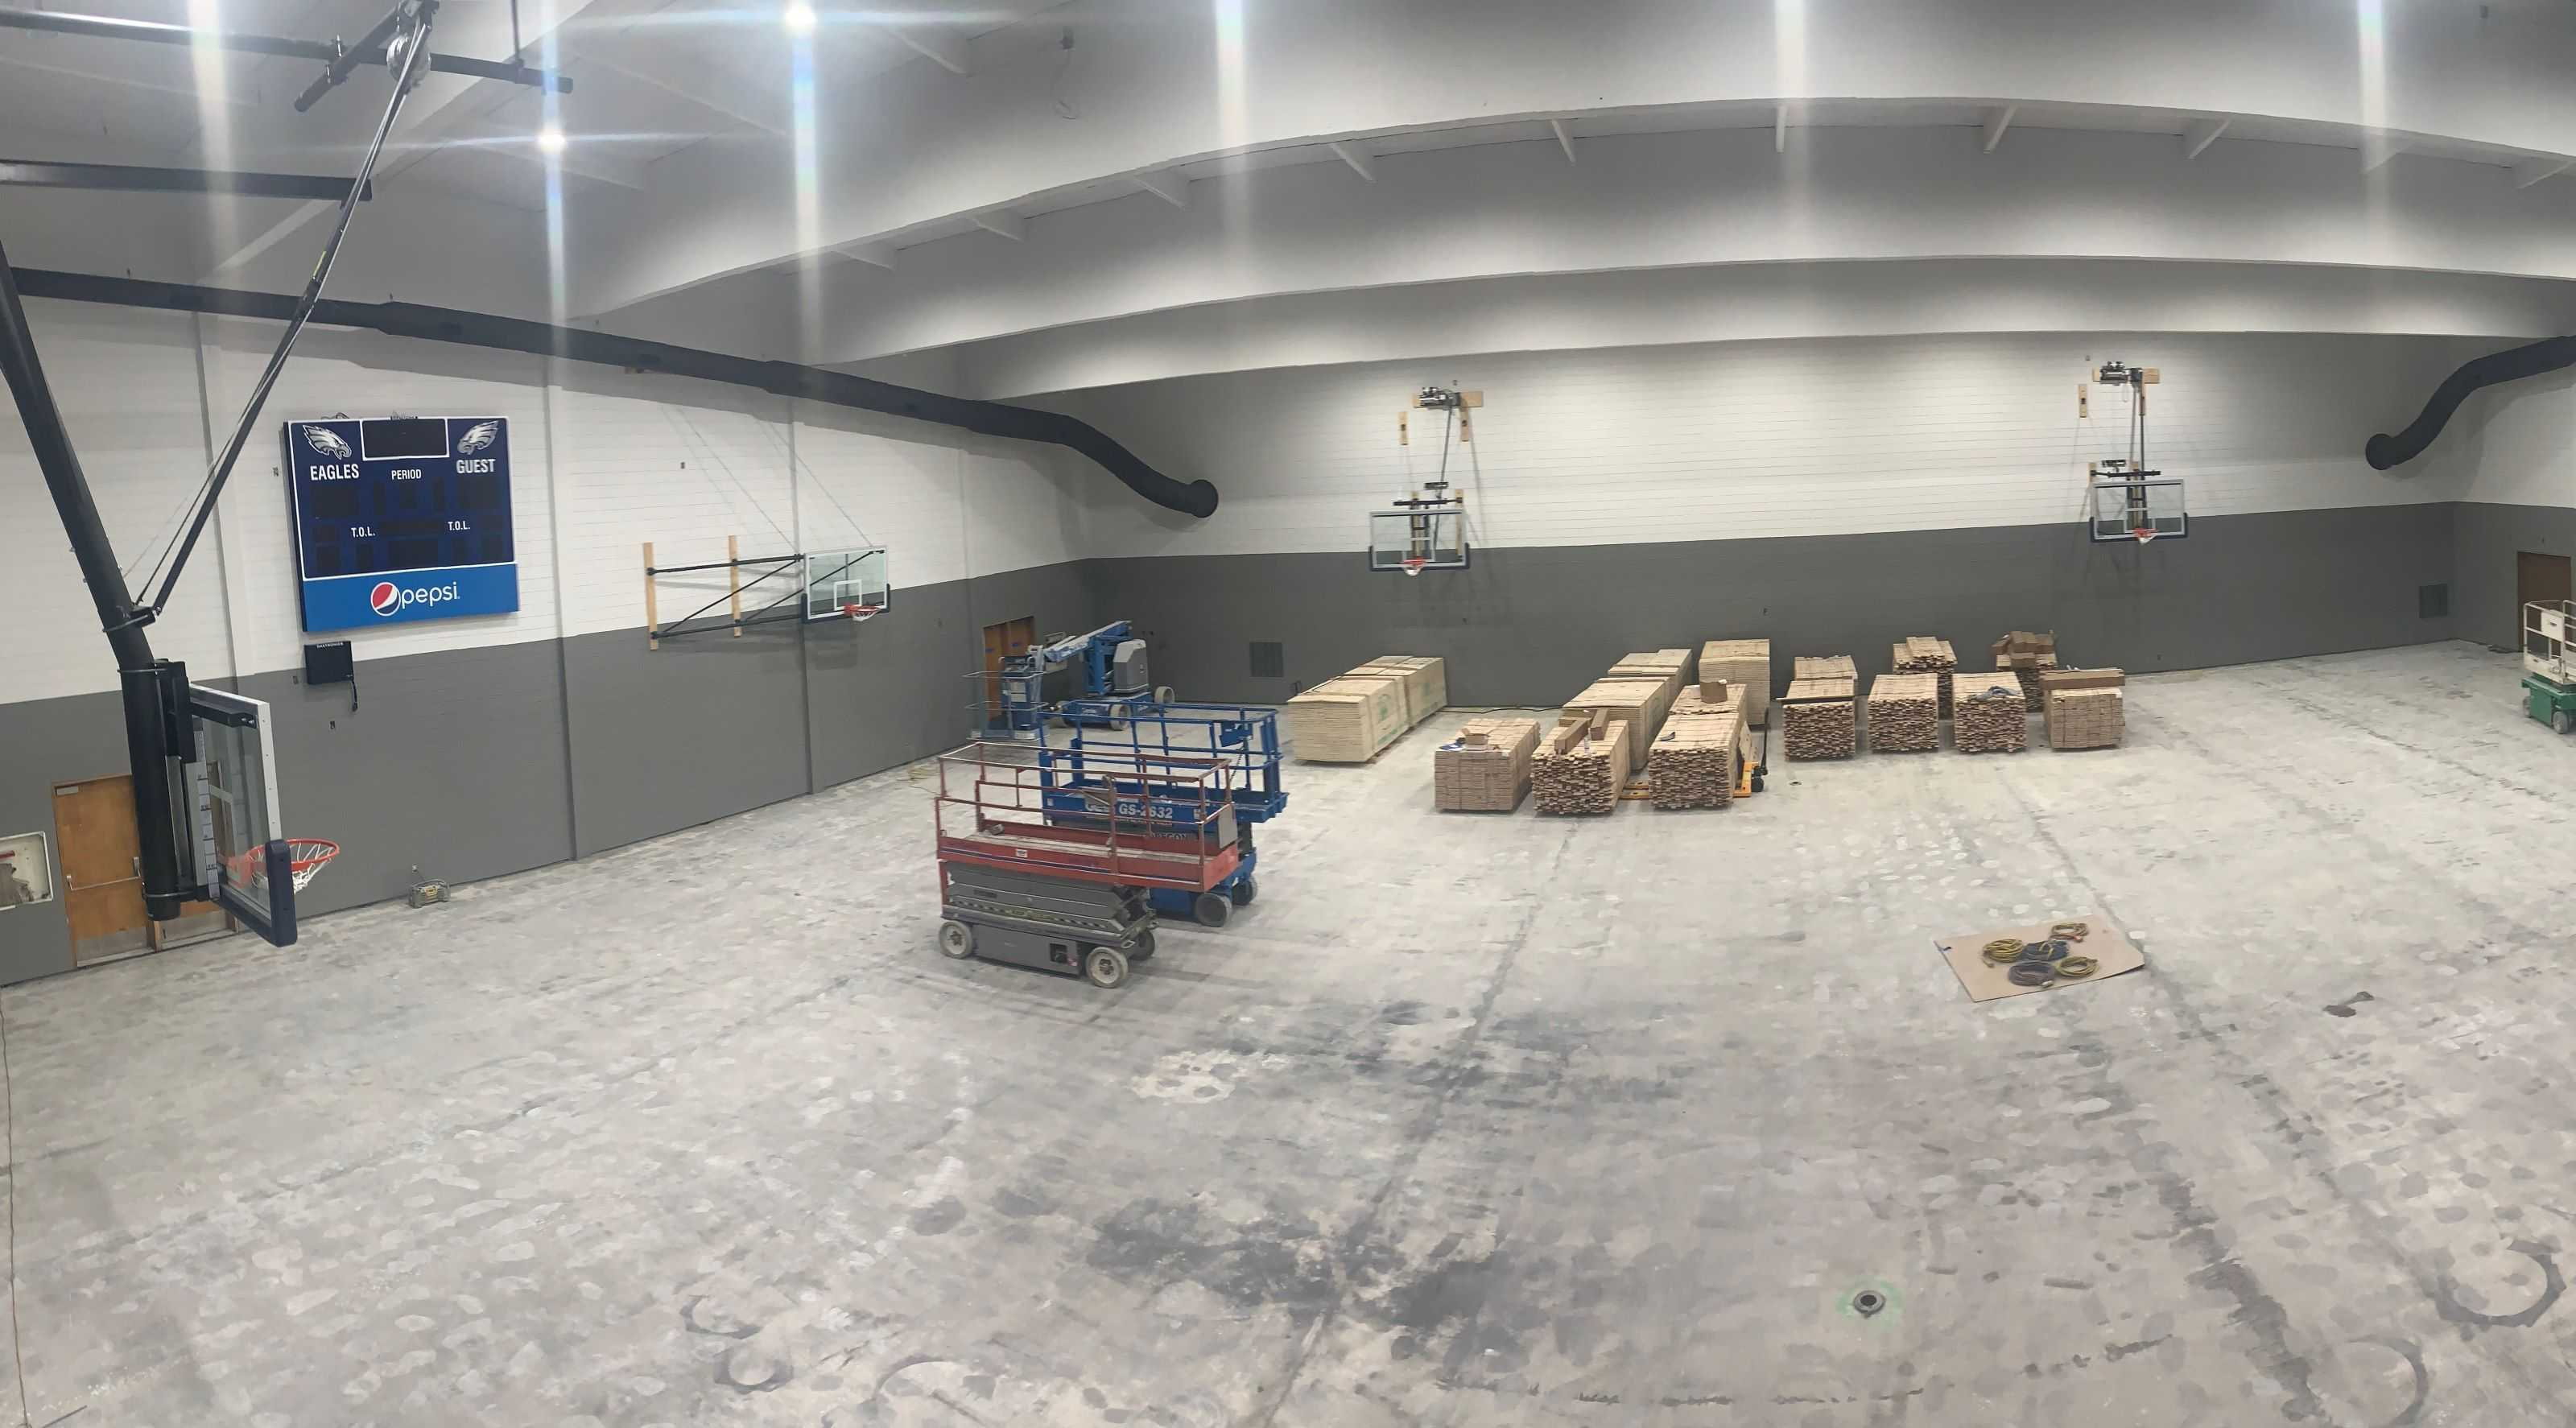 Work continues on Joseph's new gym, which should be ready for use by mid-October. (Photo courtesy Joseph Charter School)